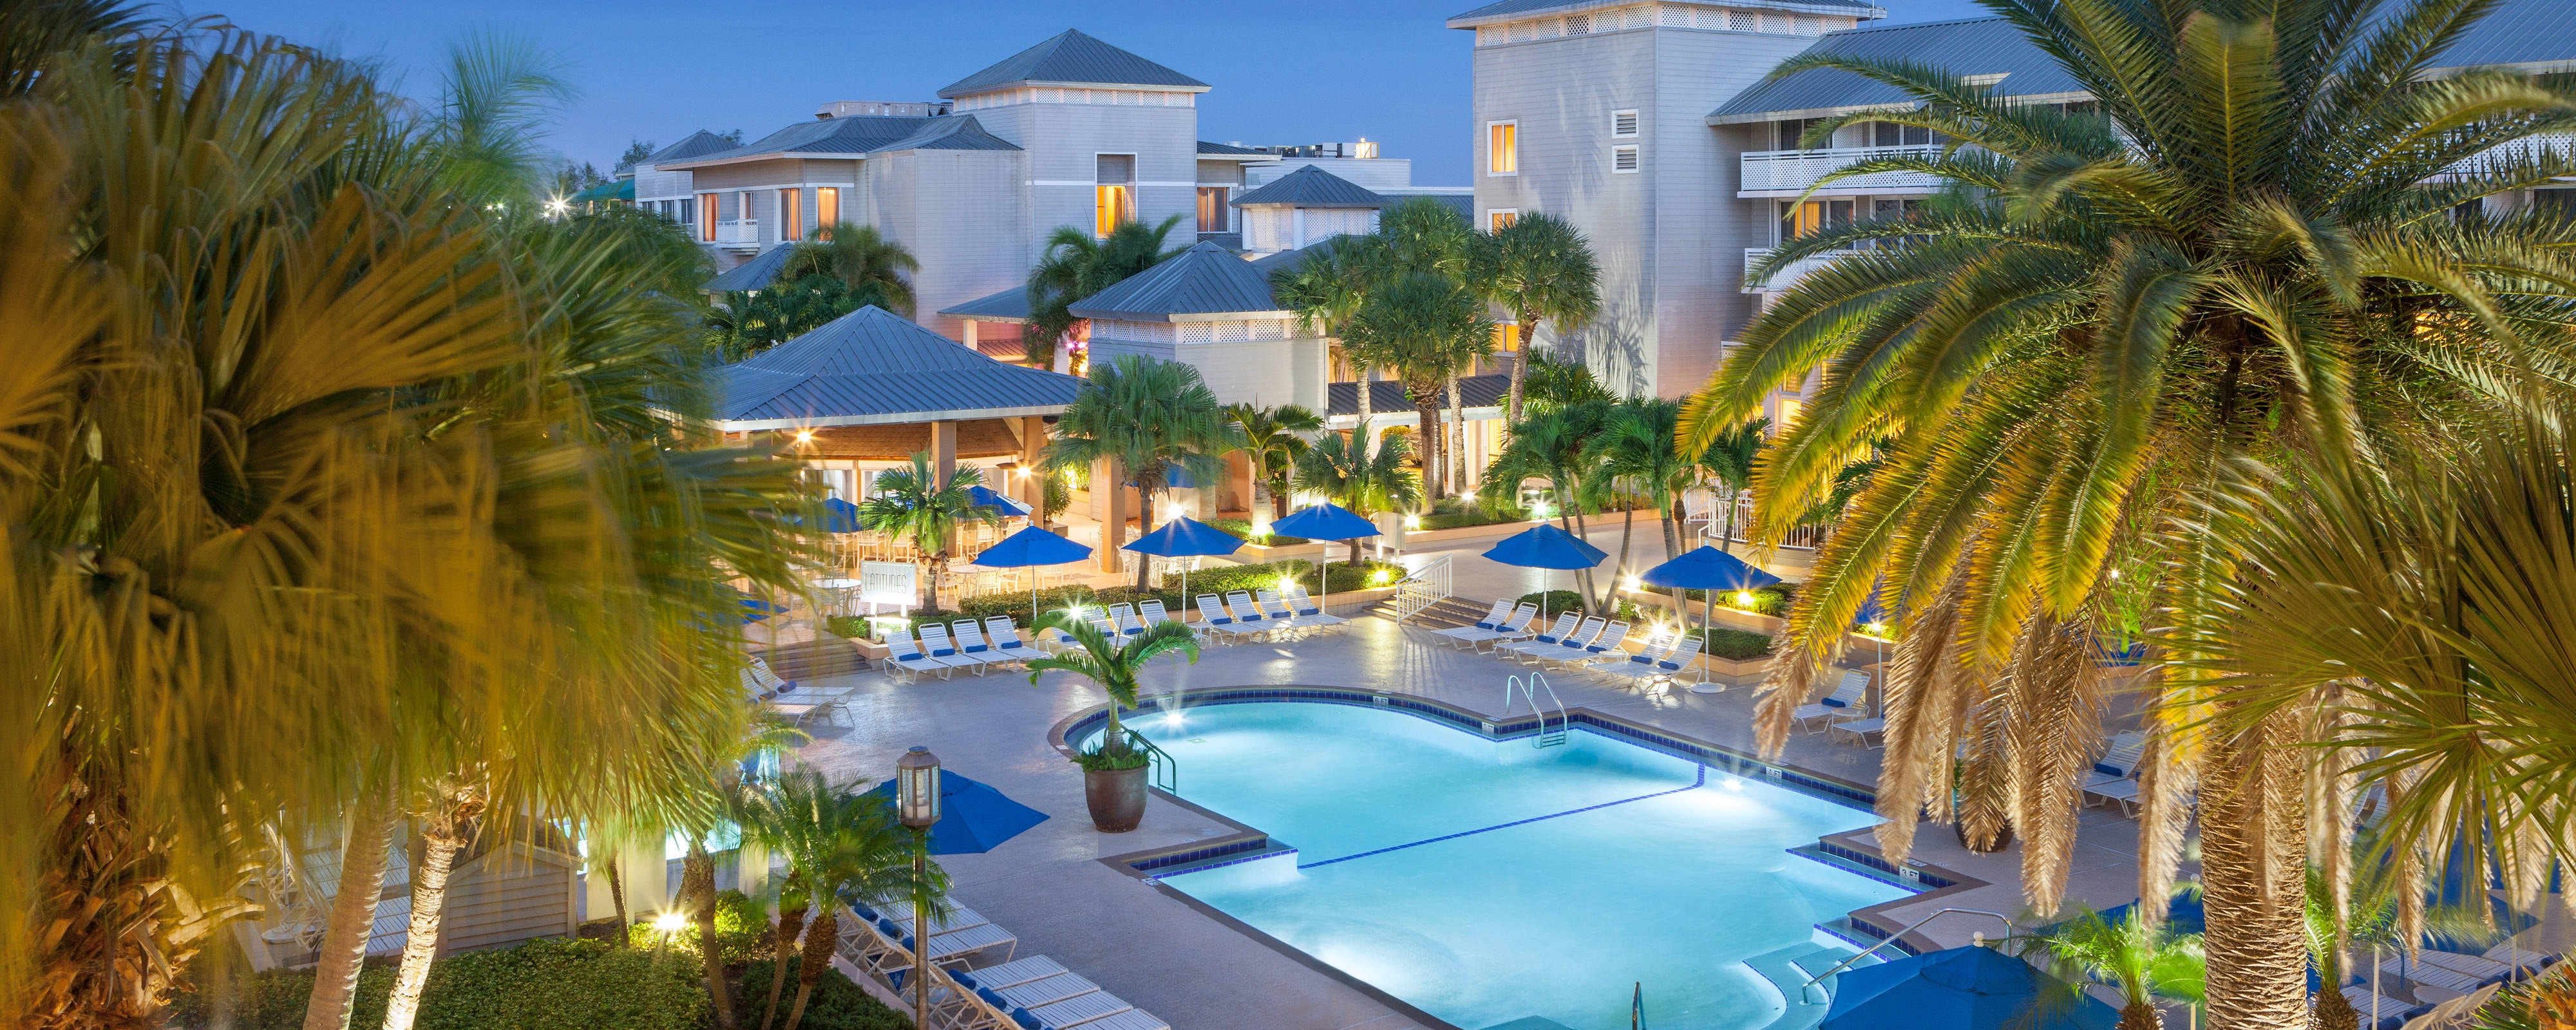 Resort in Stuart Florida  Hutchinson Island Marriott